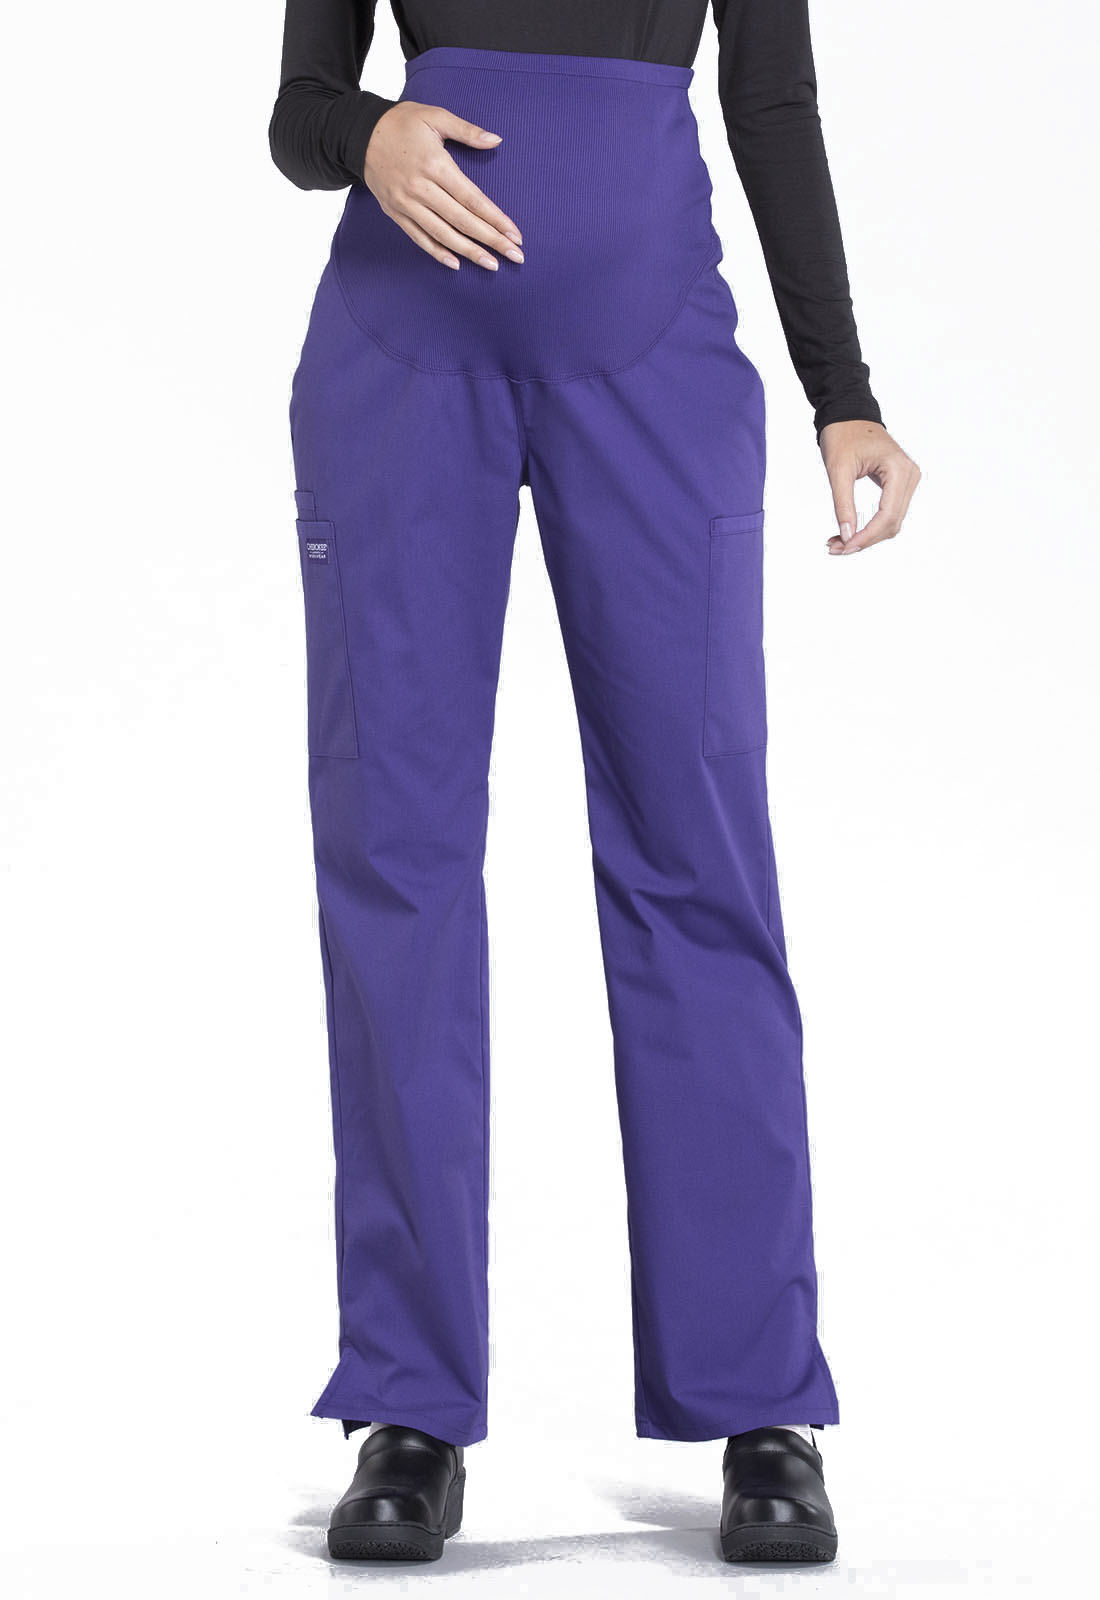 543f2994efeff WW Professionals Maternity Straight Leg Pant in Grape WW220-GRP from ...